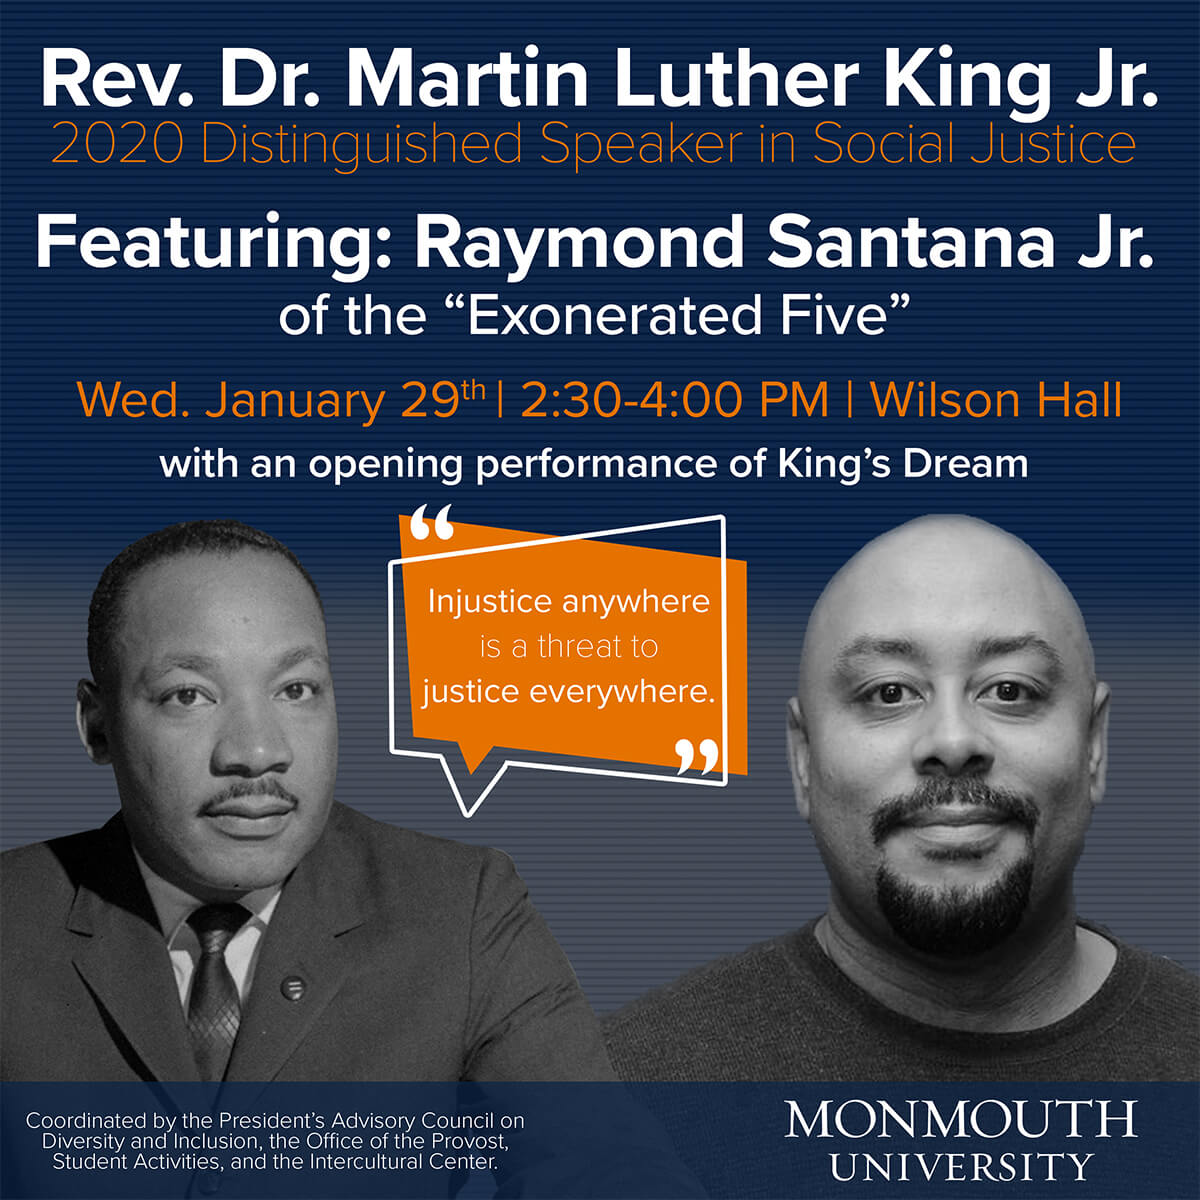 Photo image of poster announcing 2020 Distinguished Speaker in Social Justice Raymond Santana Jr. at Monmouth University